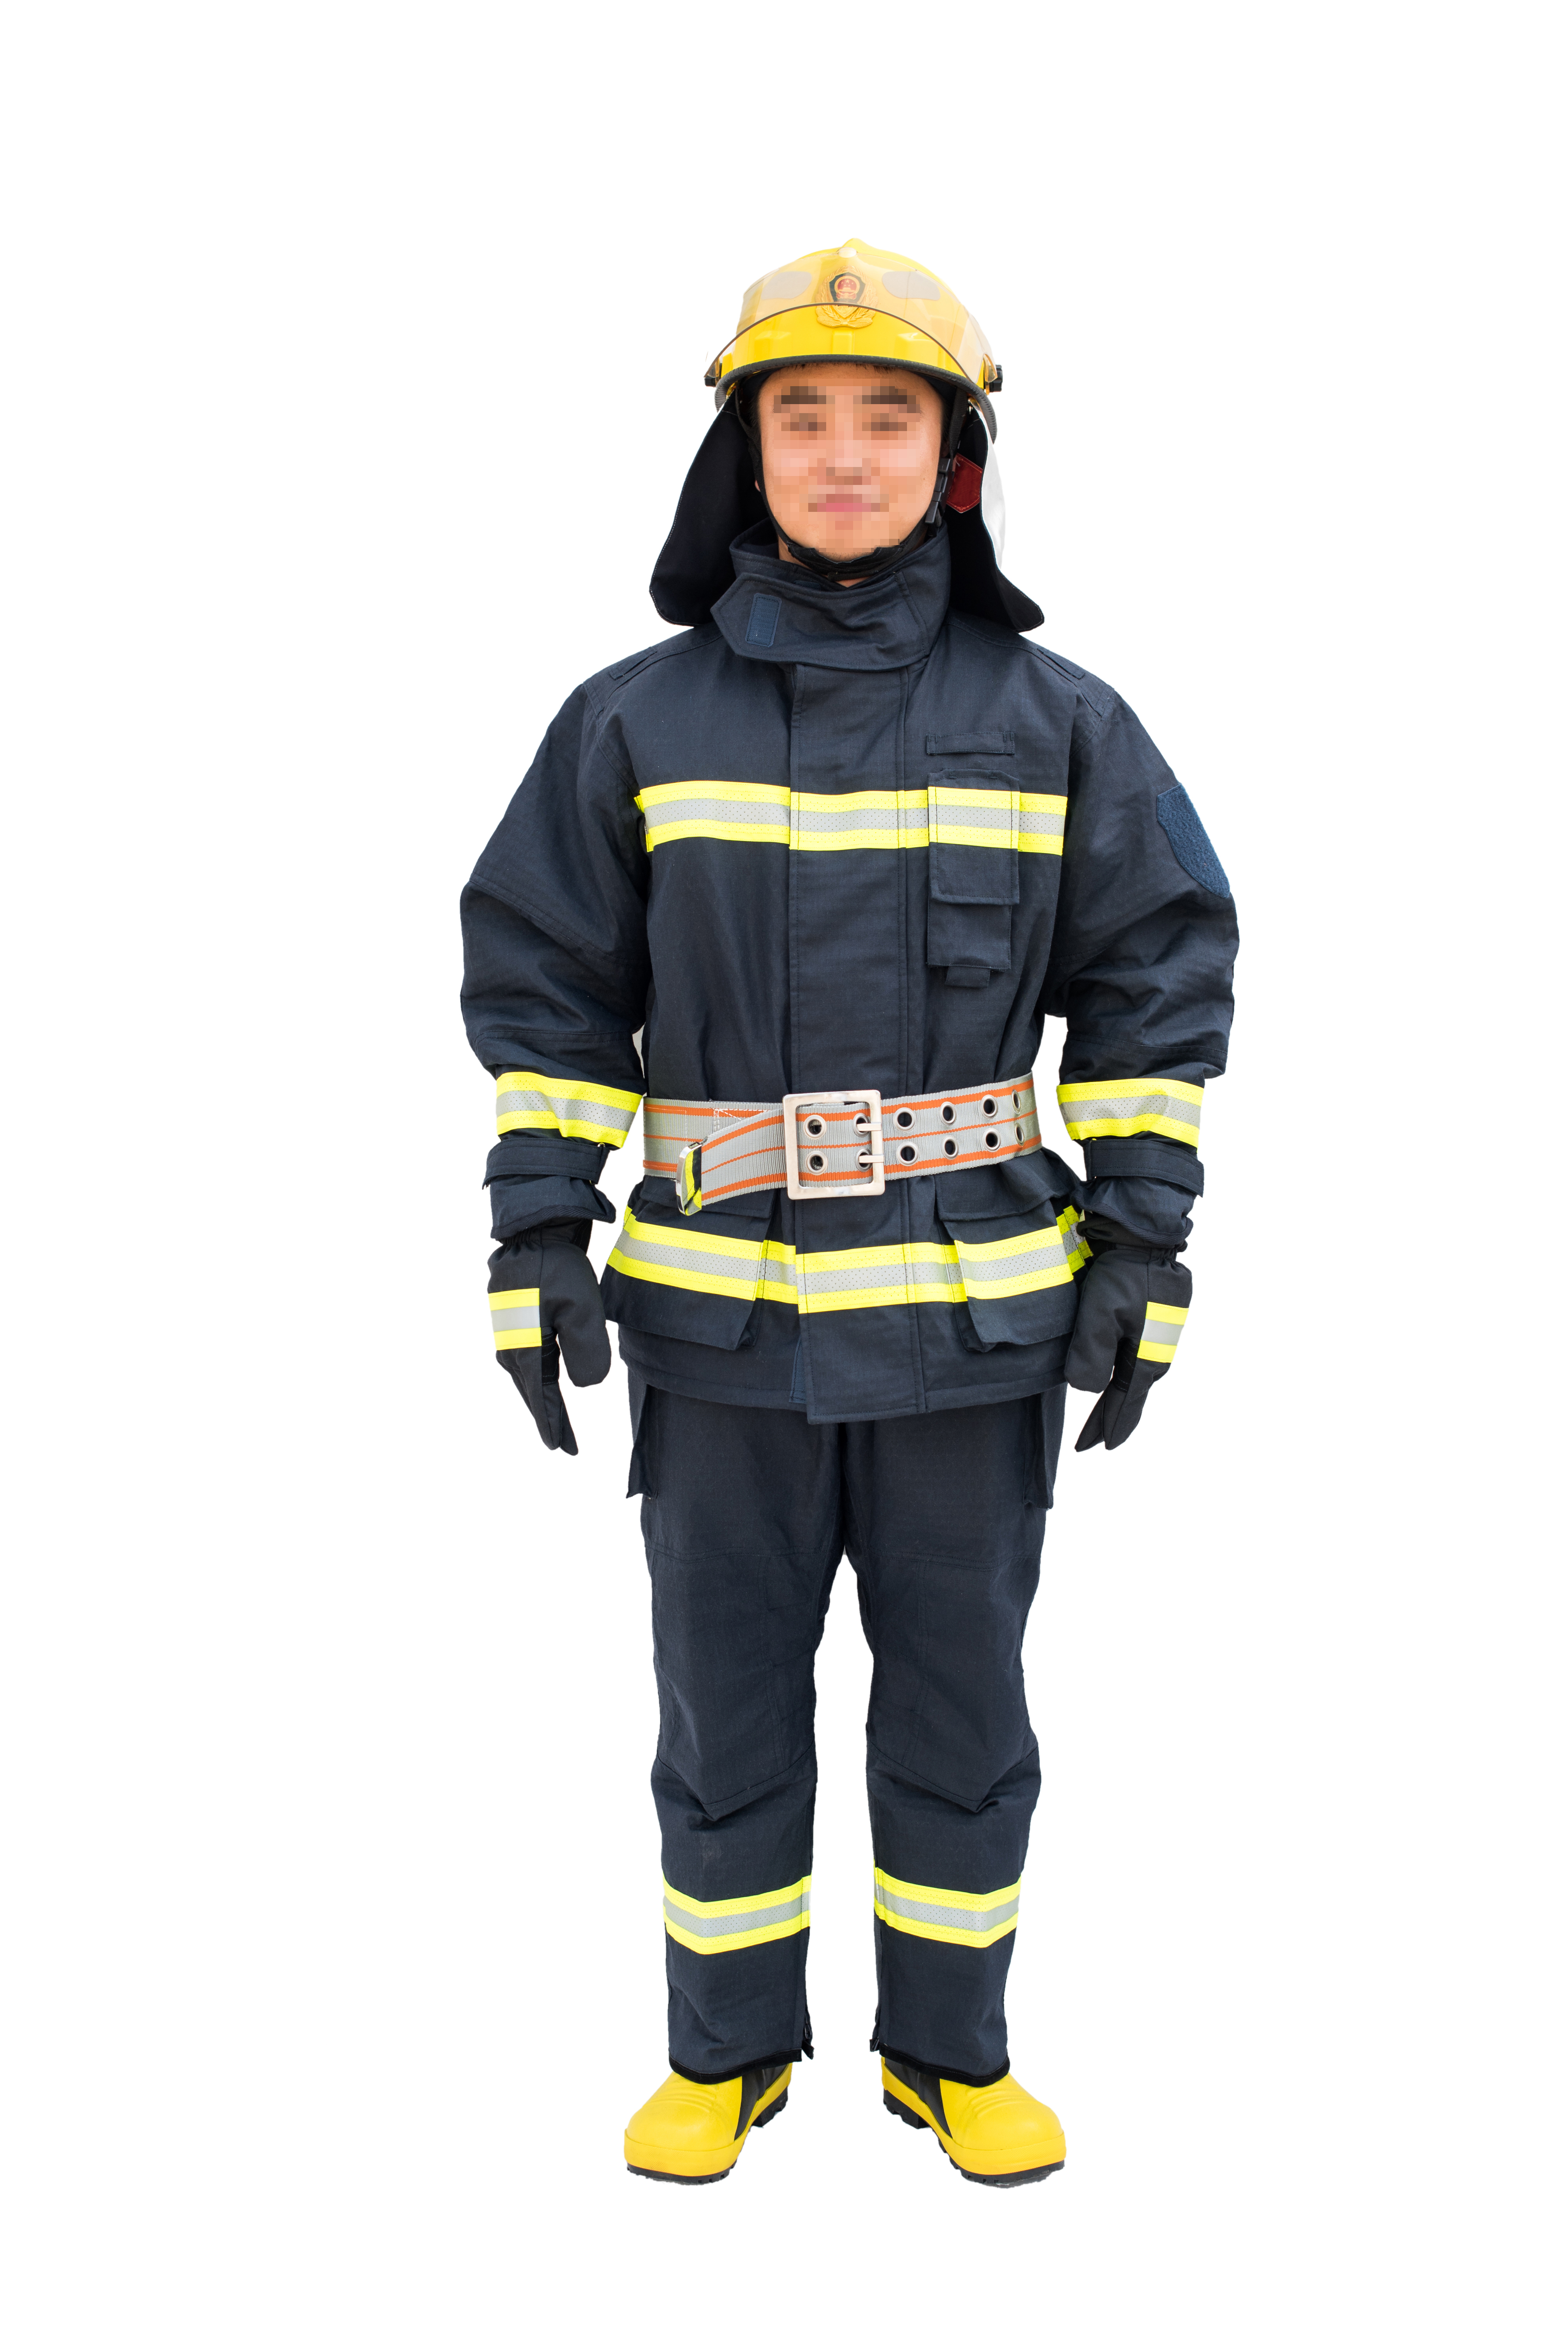 Firemen Suits Featured Image